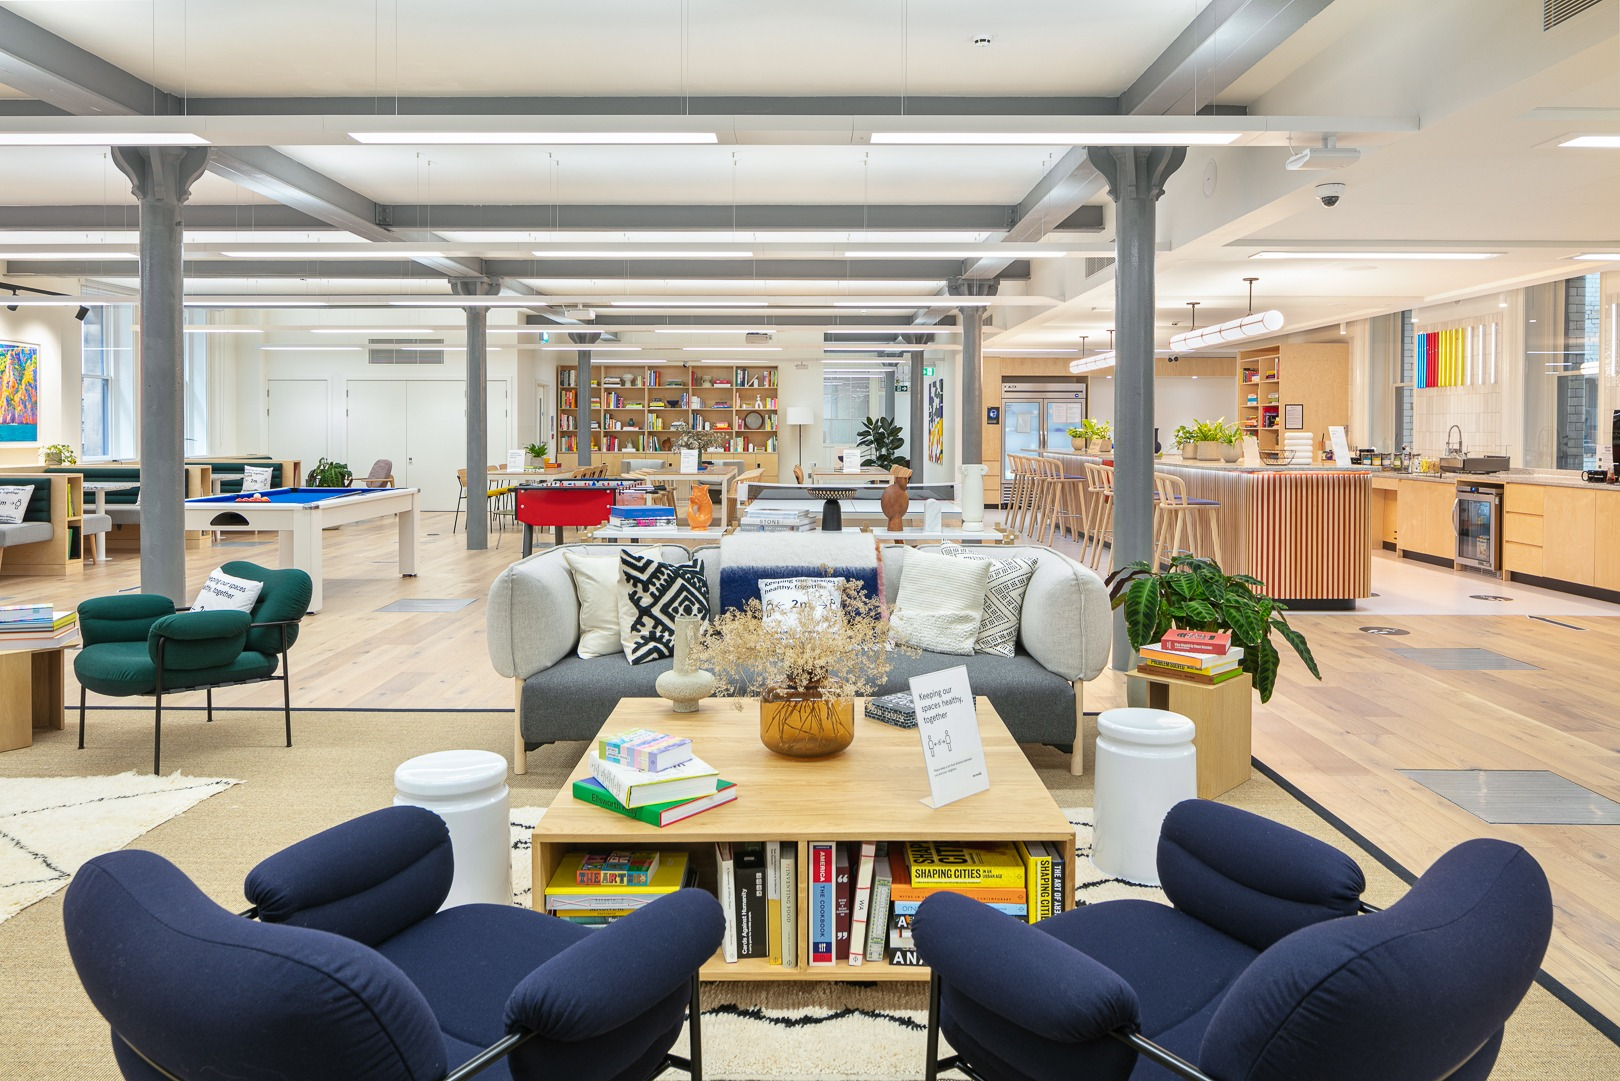 WeWork Deloitte Manchester - Delivering a new, flexible workplace vision